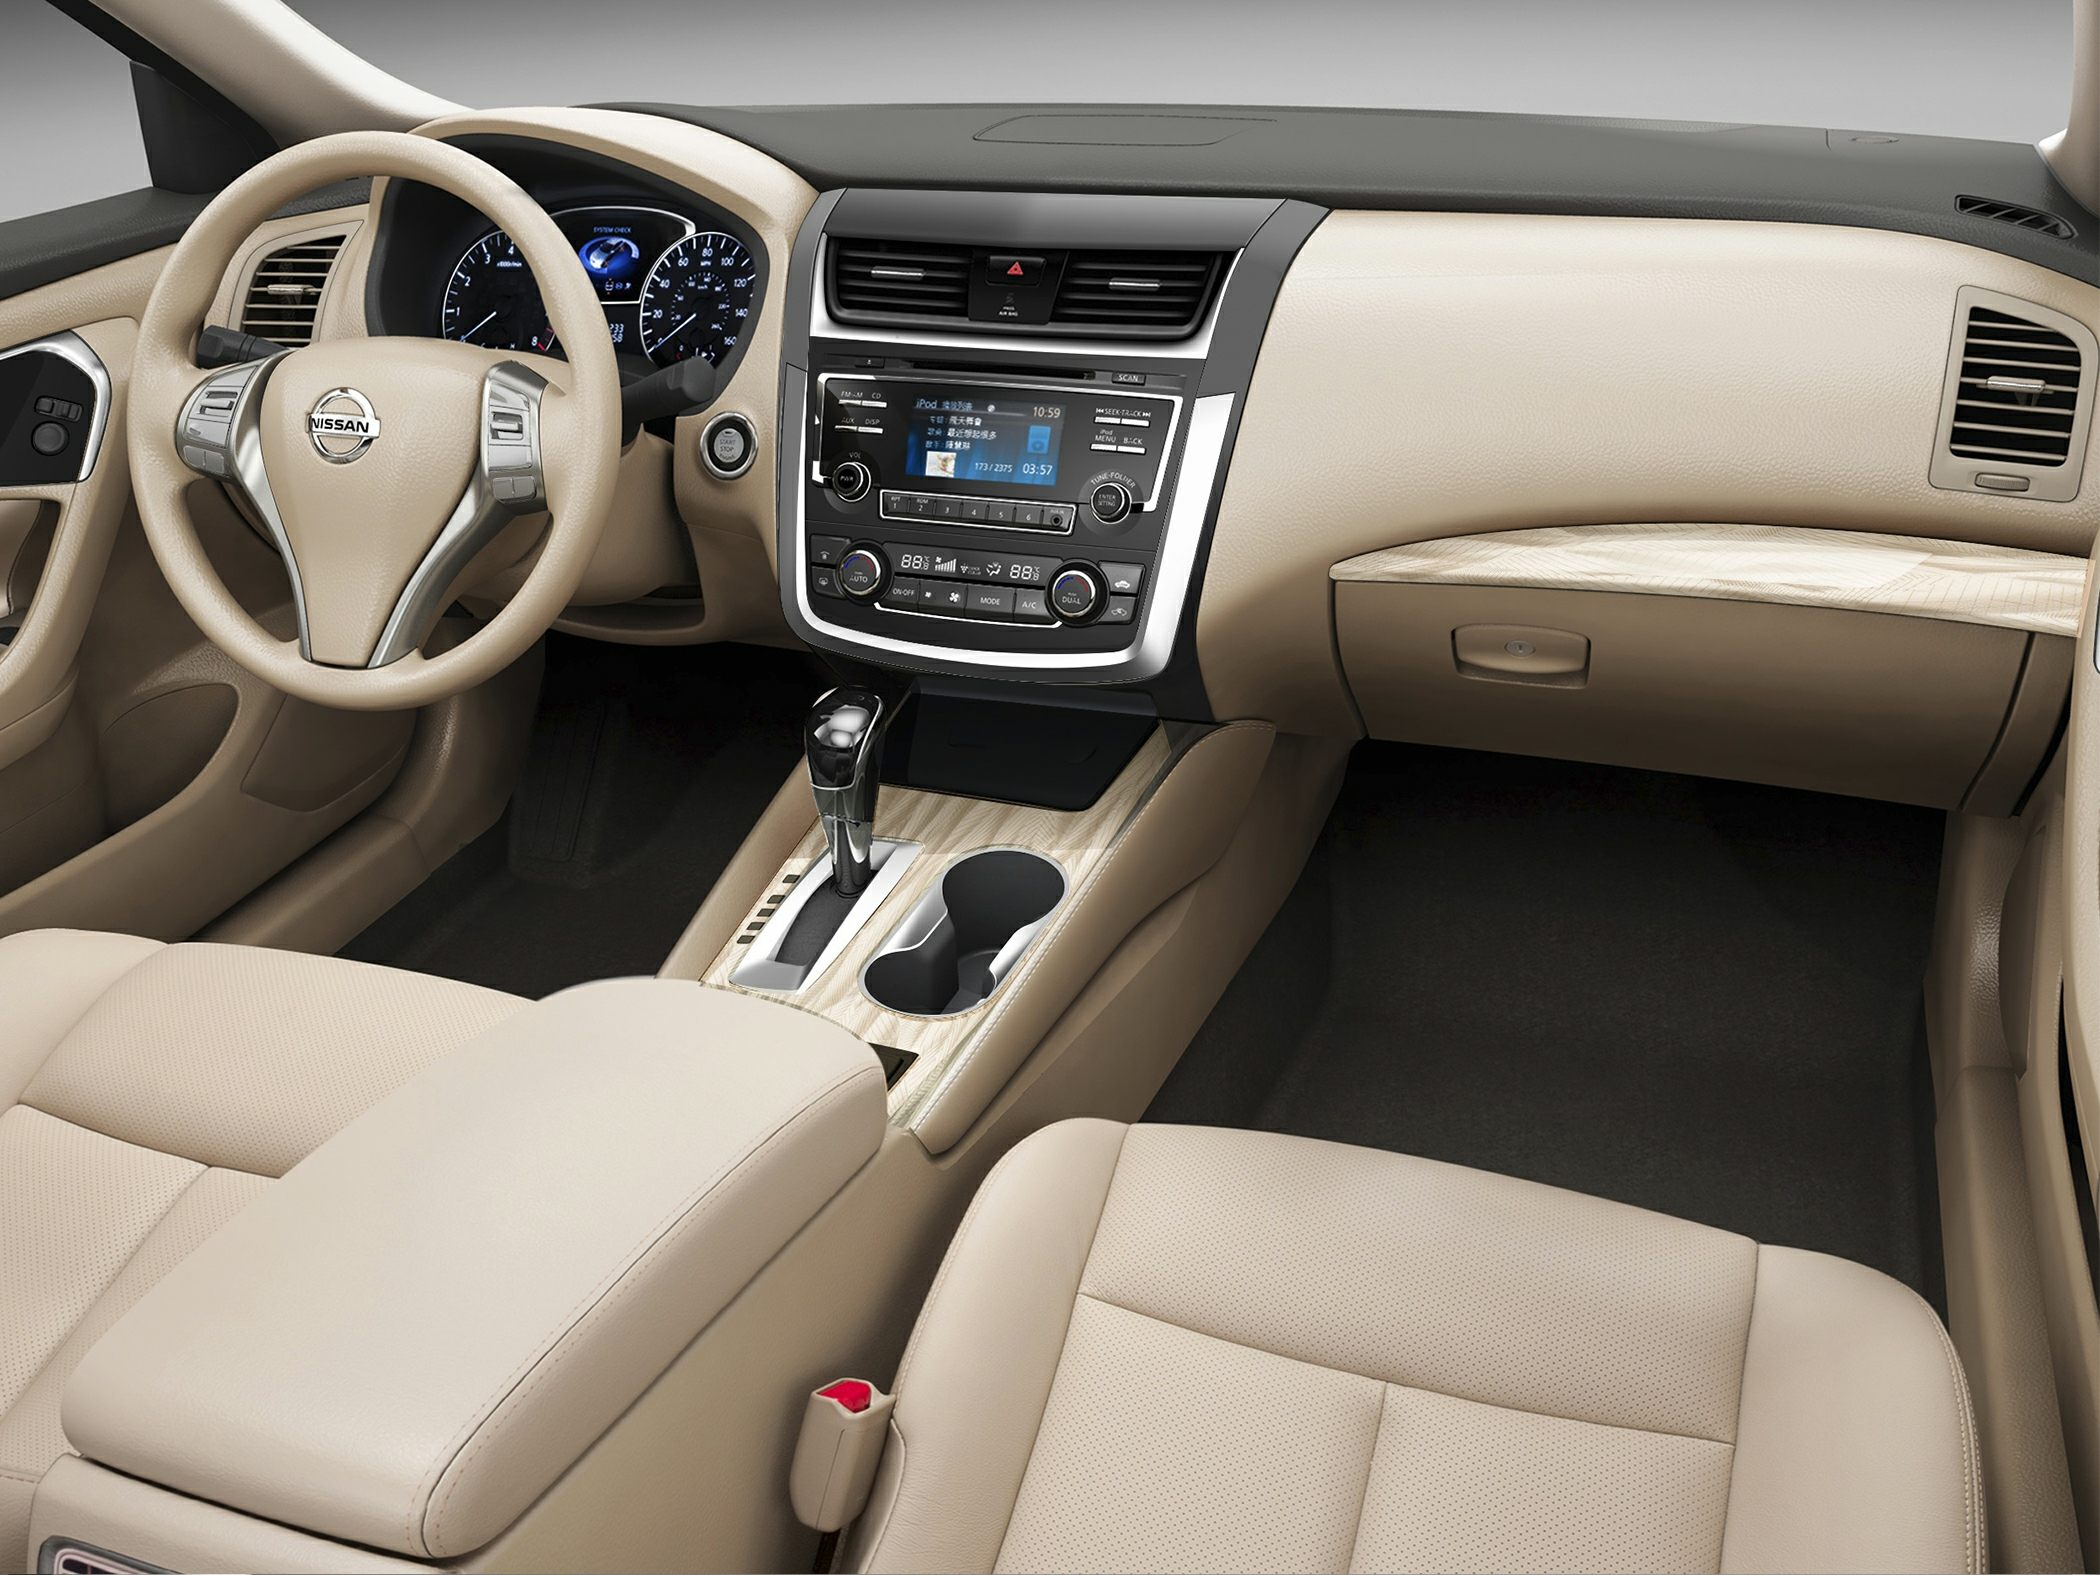 2016 nissan altima styles features highlights nissan altima interior vanachro Image collections